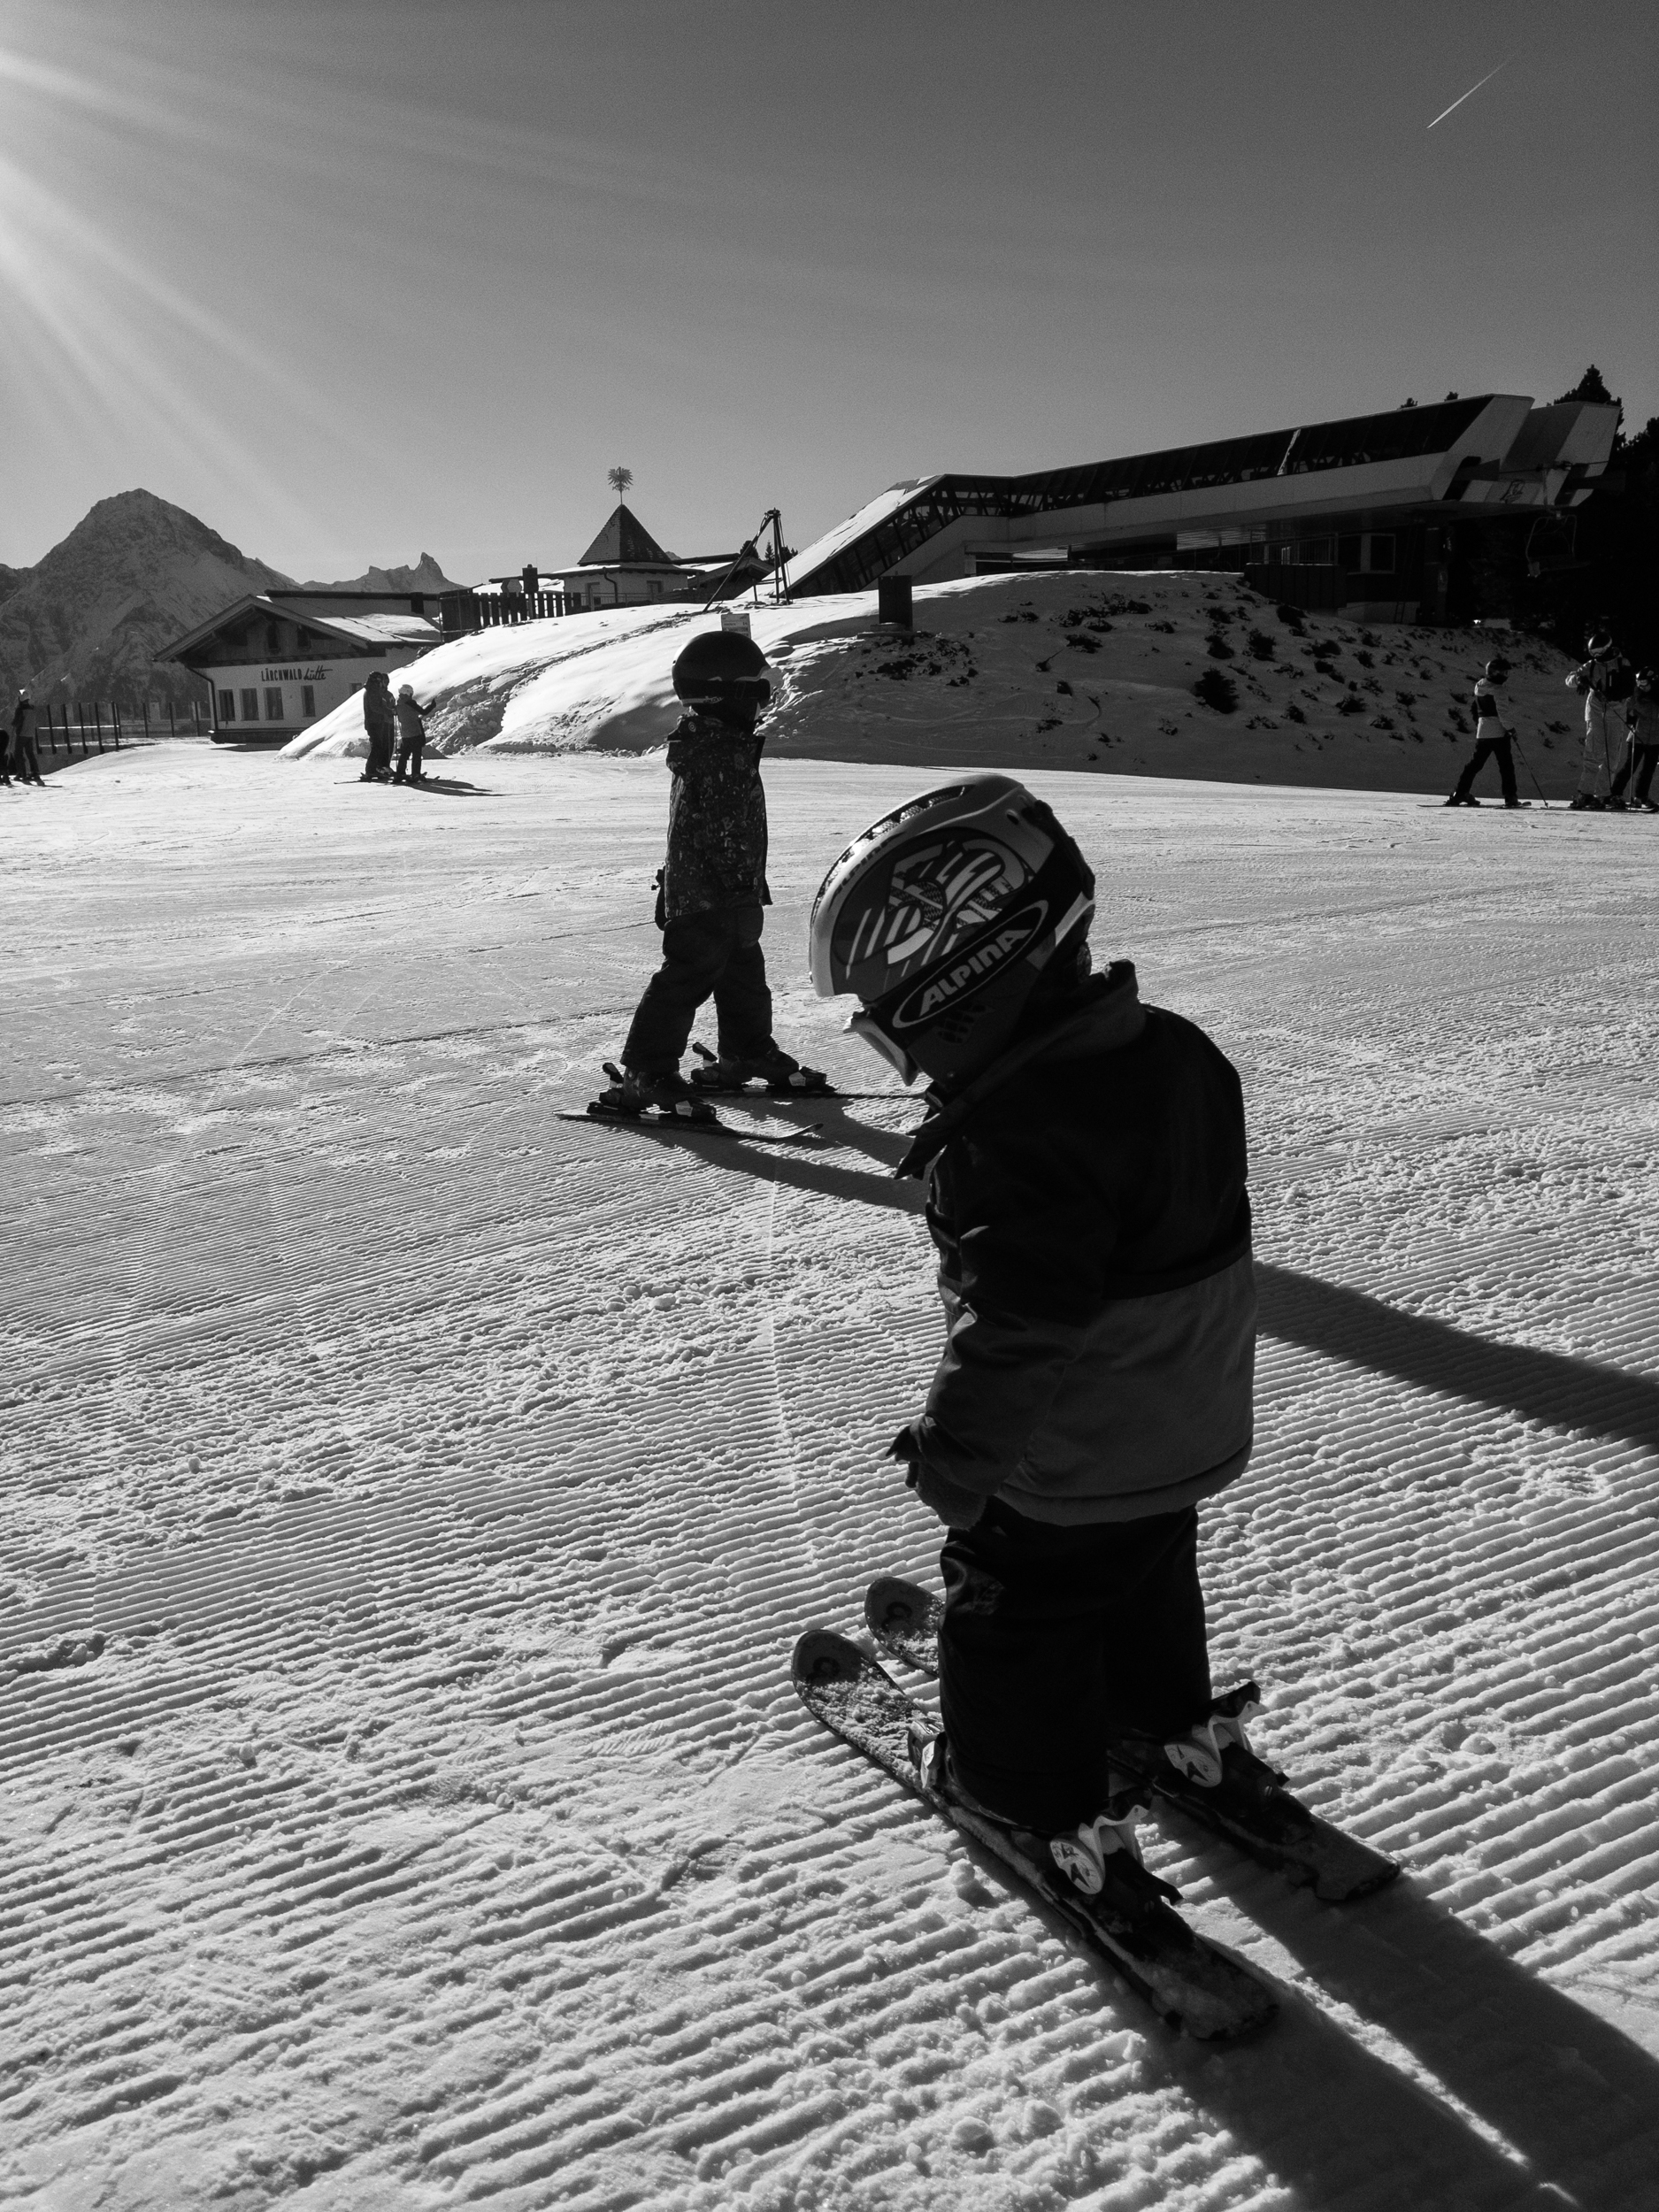 The boys on one of our first days on the mountain last season, this time with both boys on skis. cant wait for the winter to come around again! 7 weeks and counting!